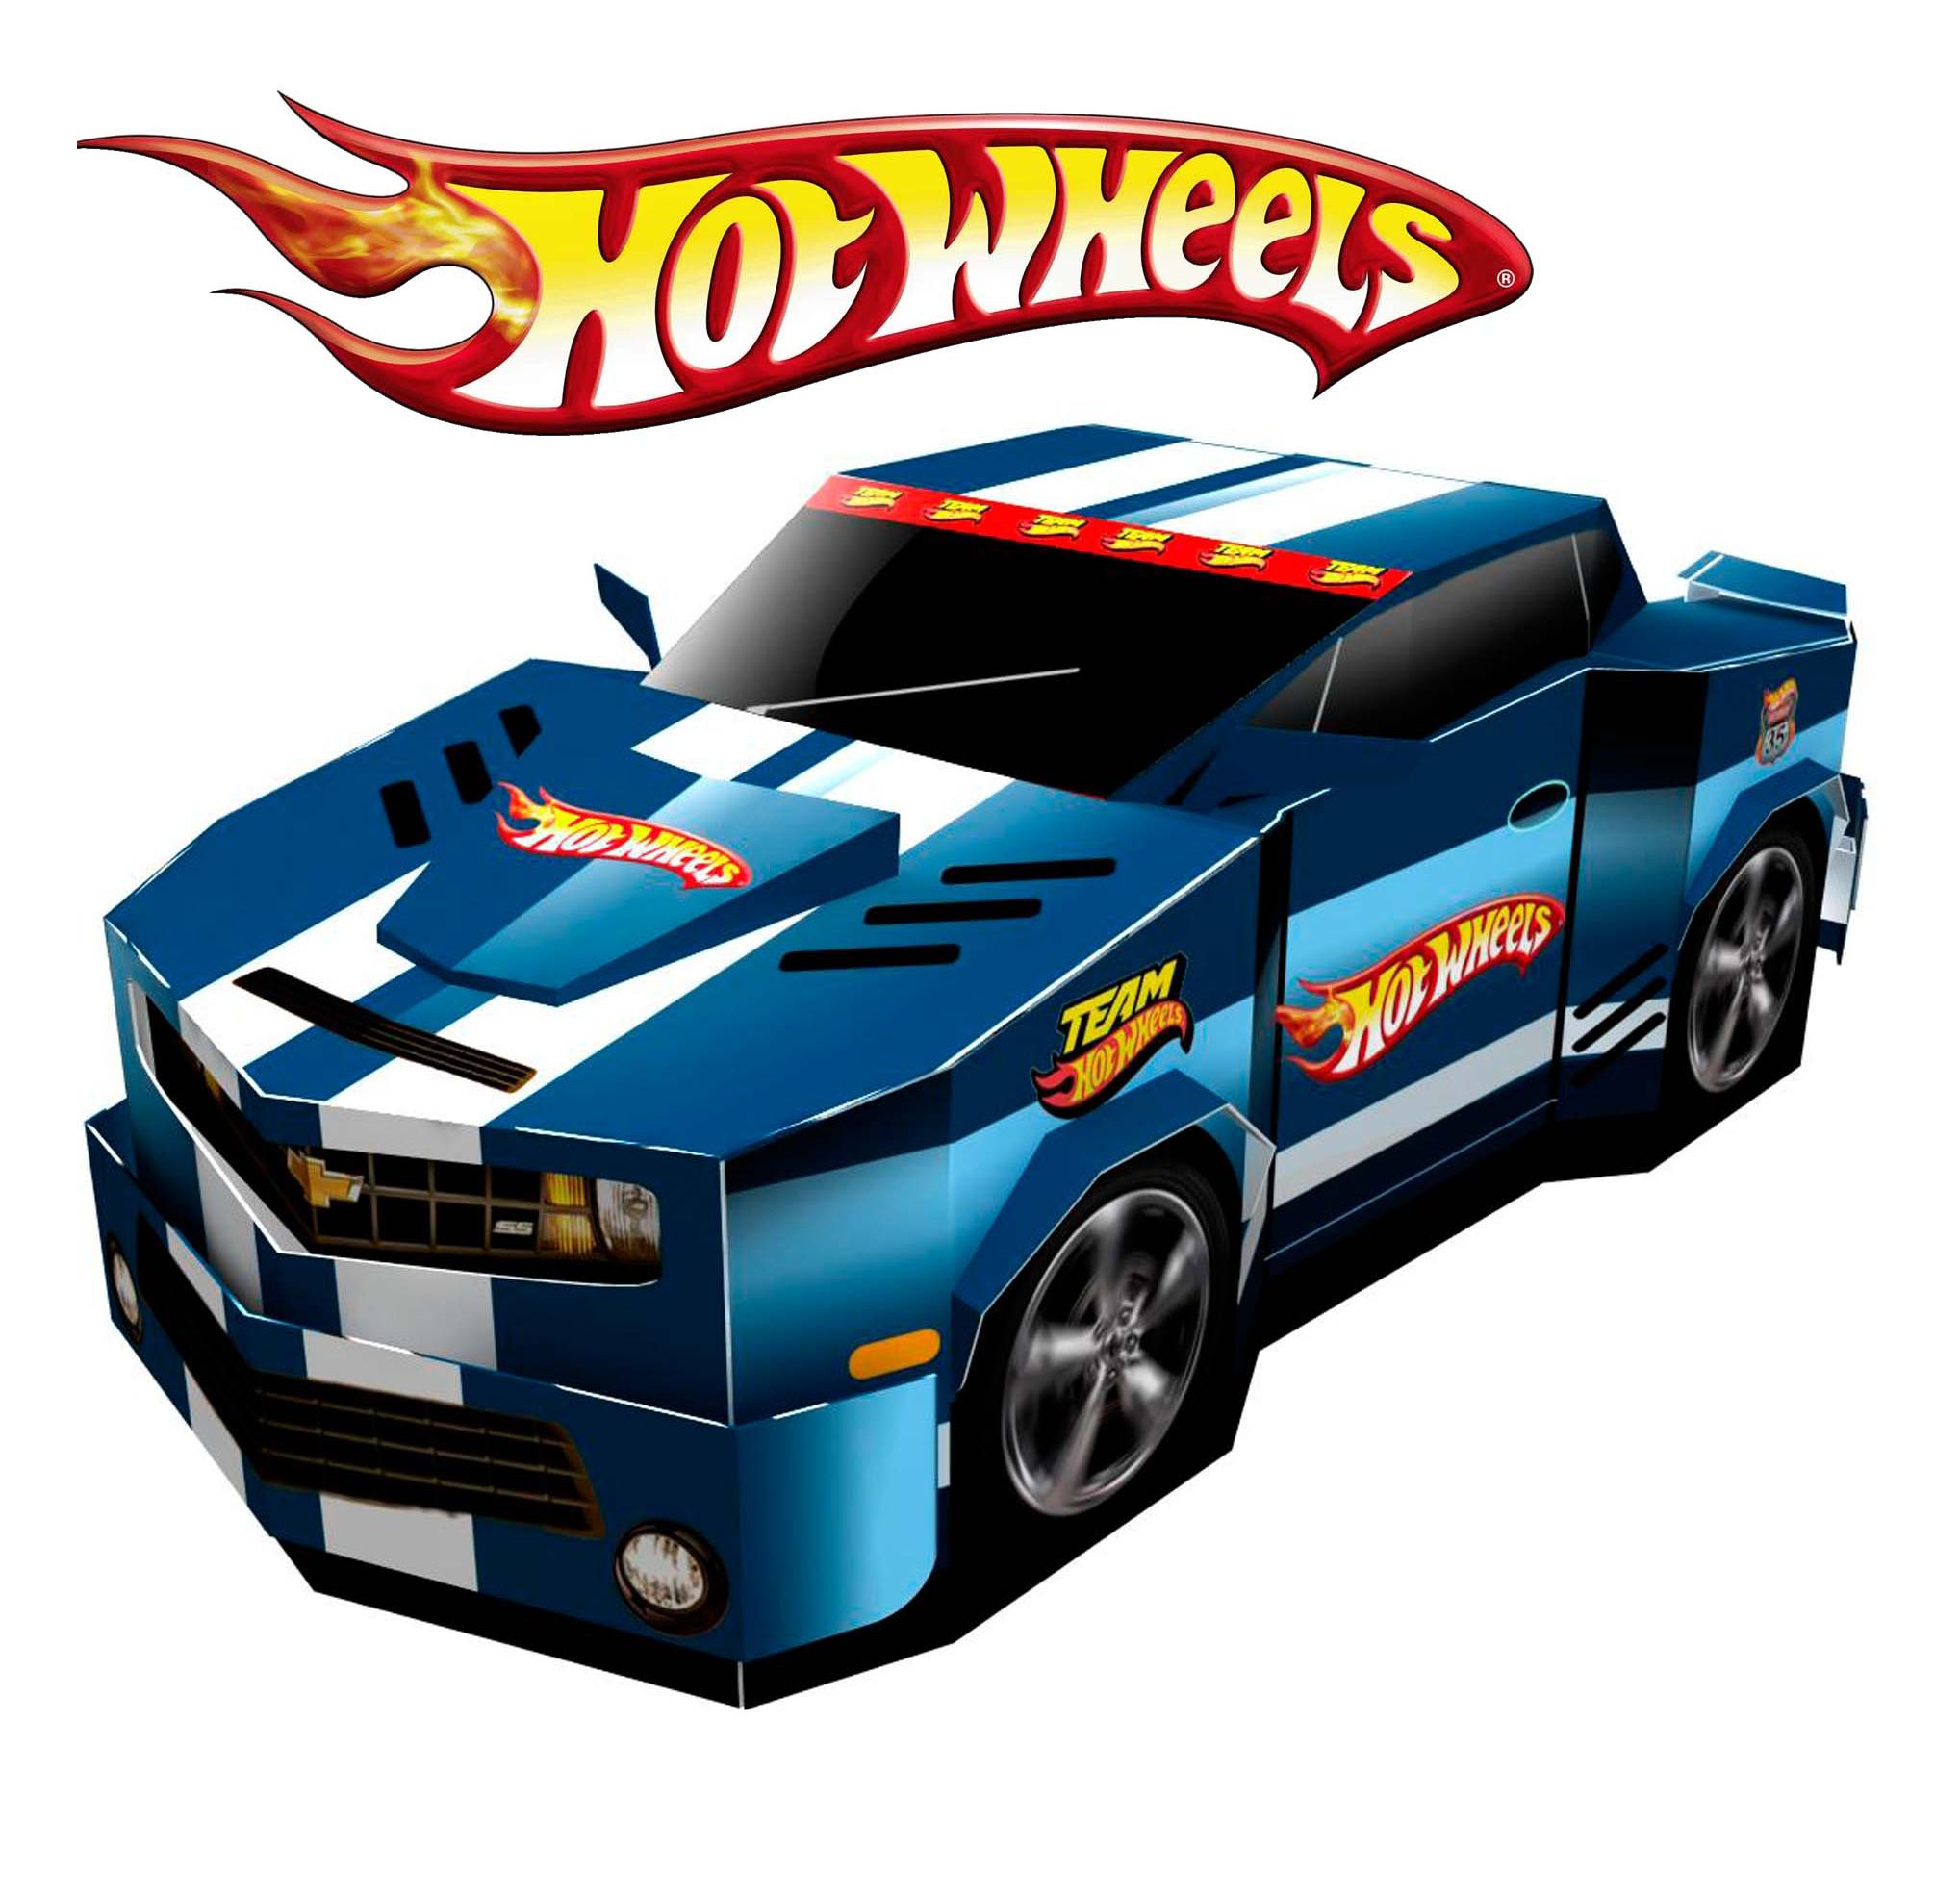 3 4 View Of Car Boxy With Images Hot Wheels Hot Wheels Cars